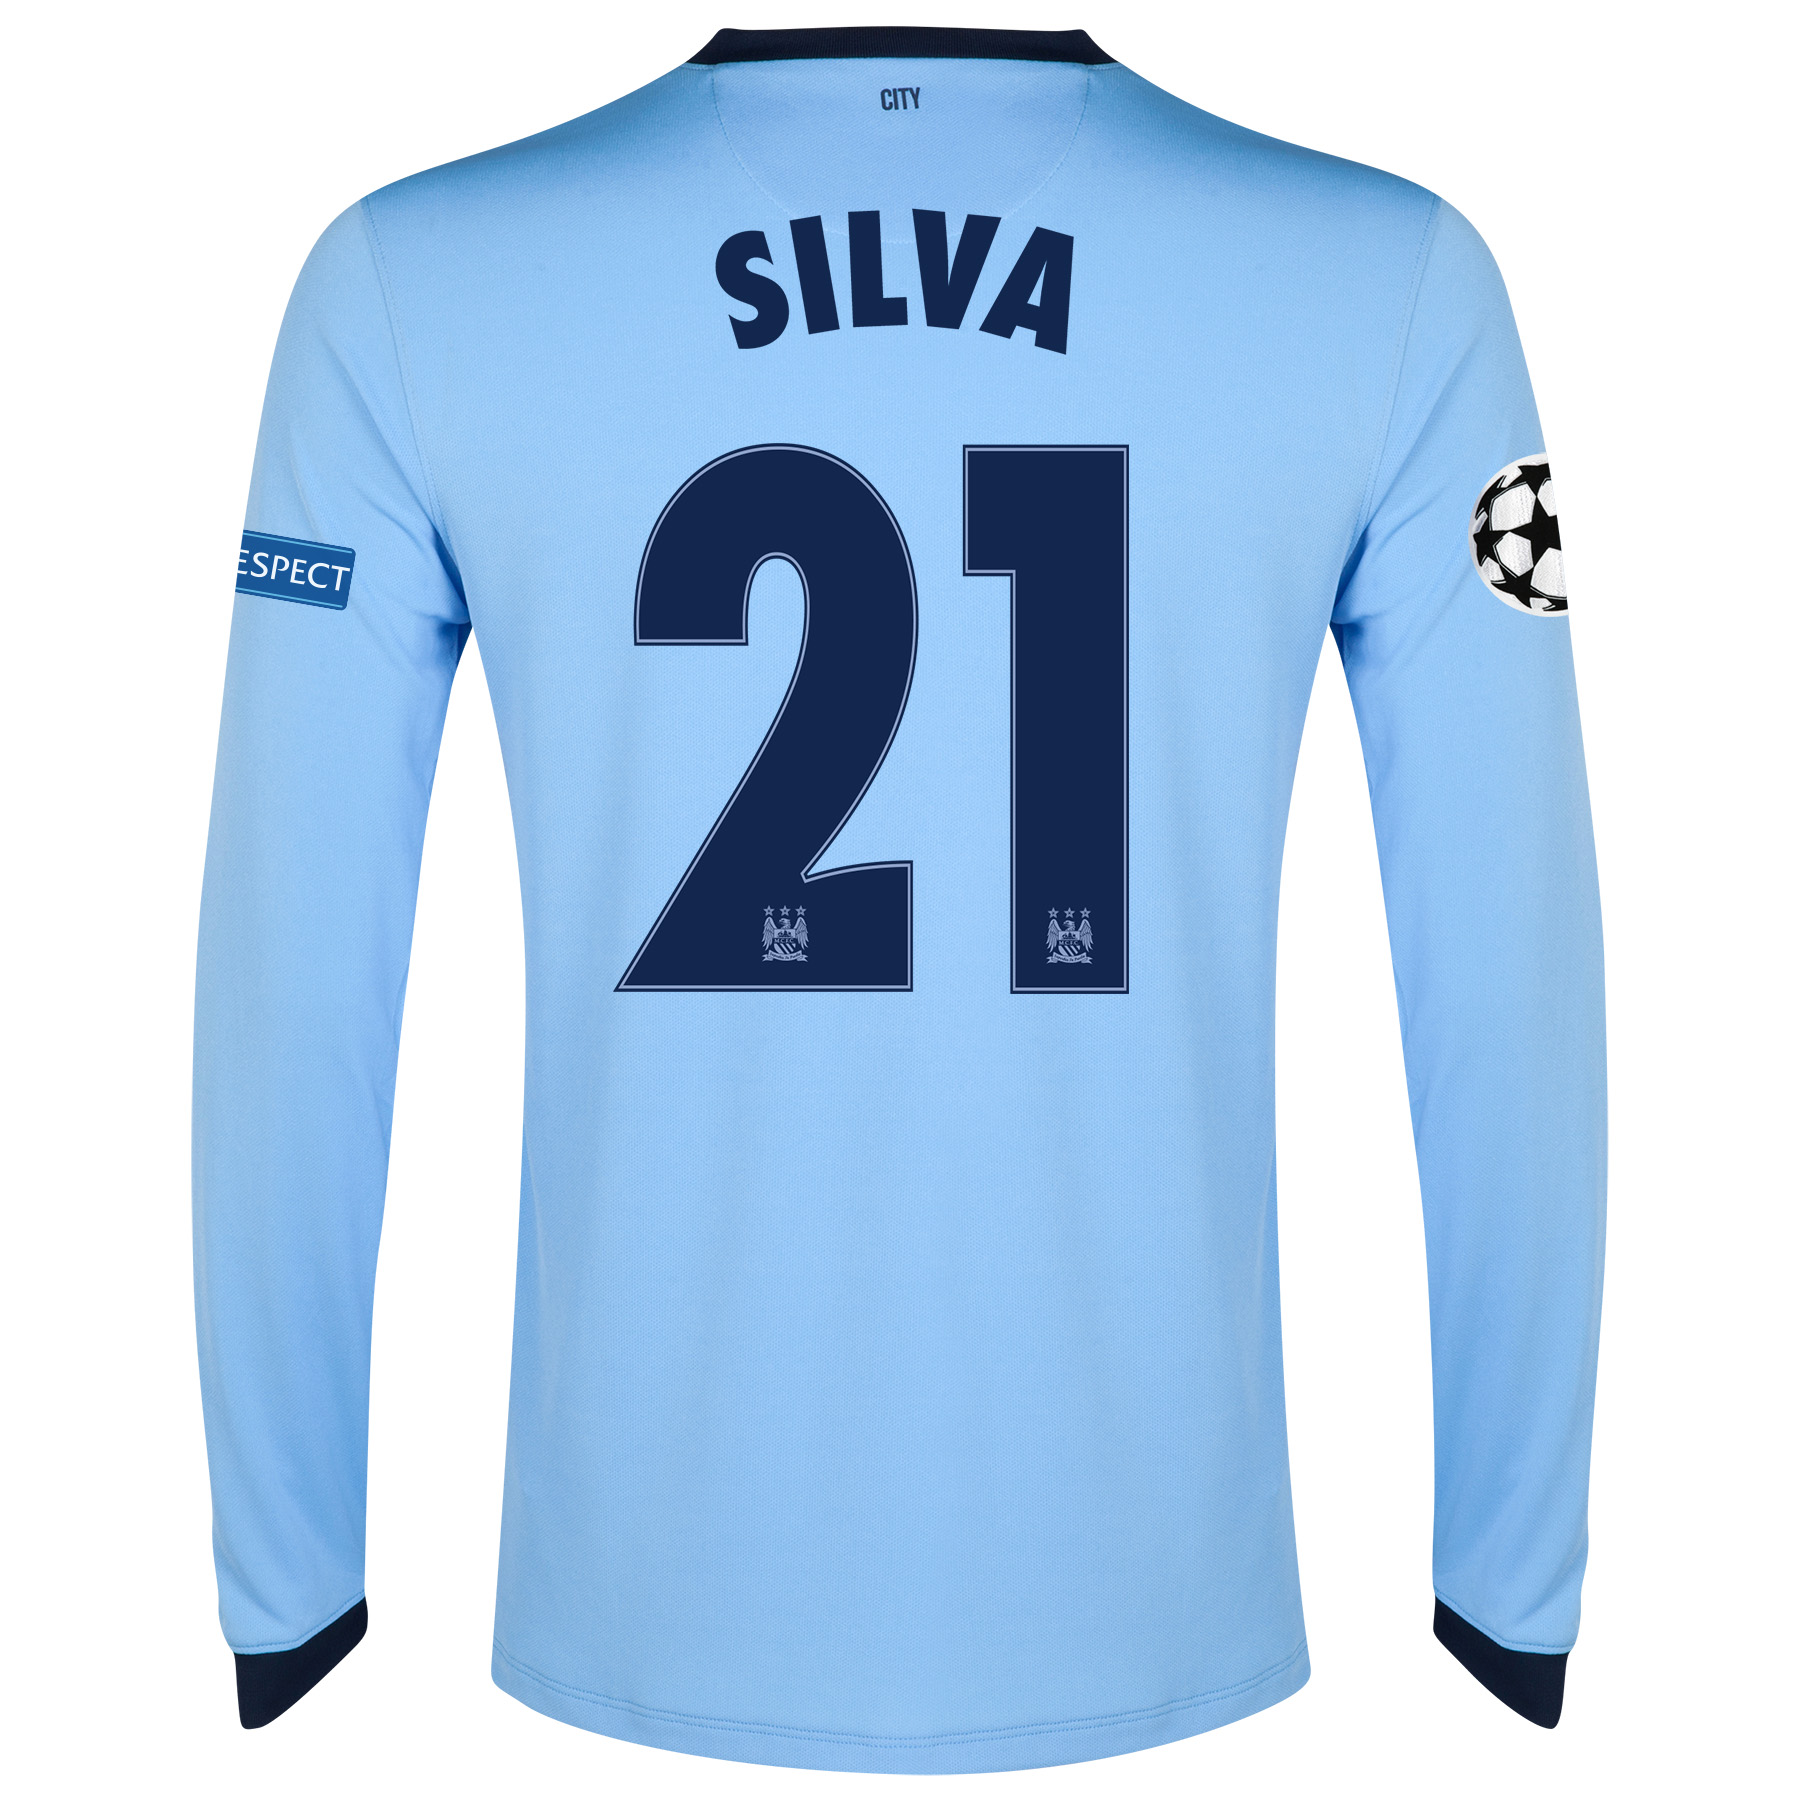 Manchester City UEFA Champions League Home Shirt 2014/15 - Long Sleeve - Kids Sky Blue with Silva 21 printing